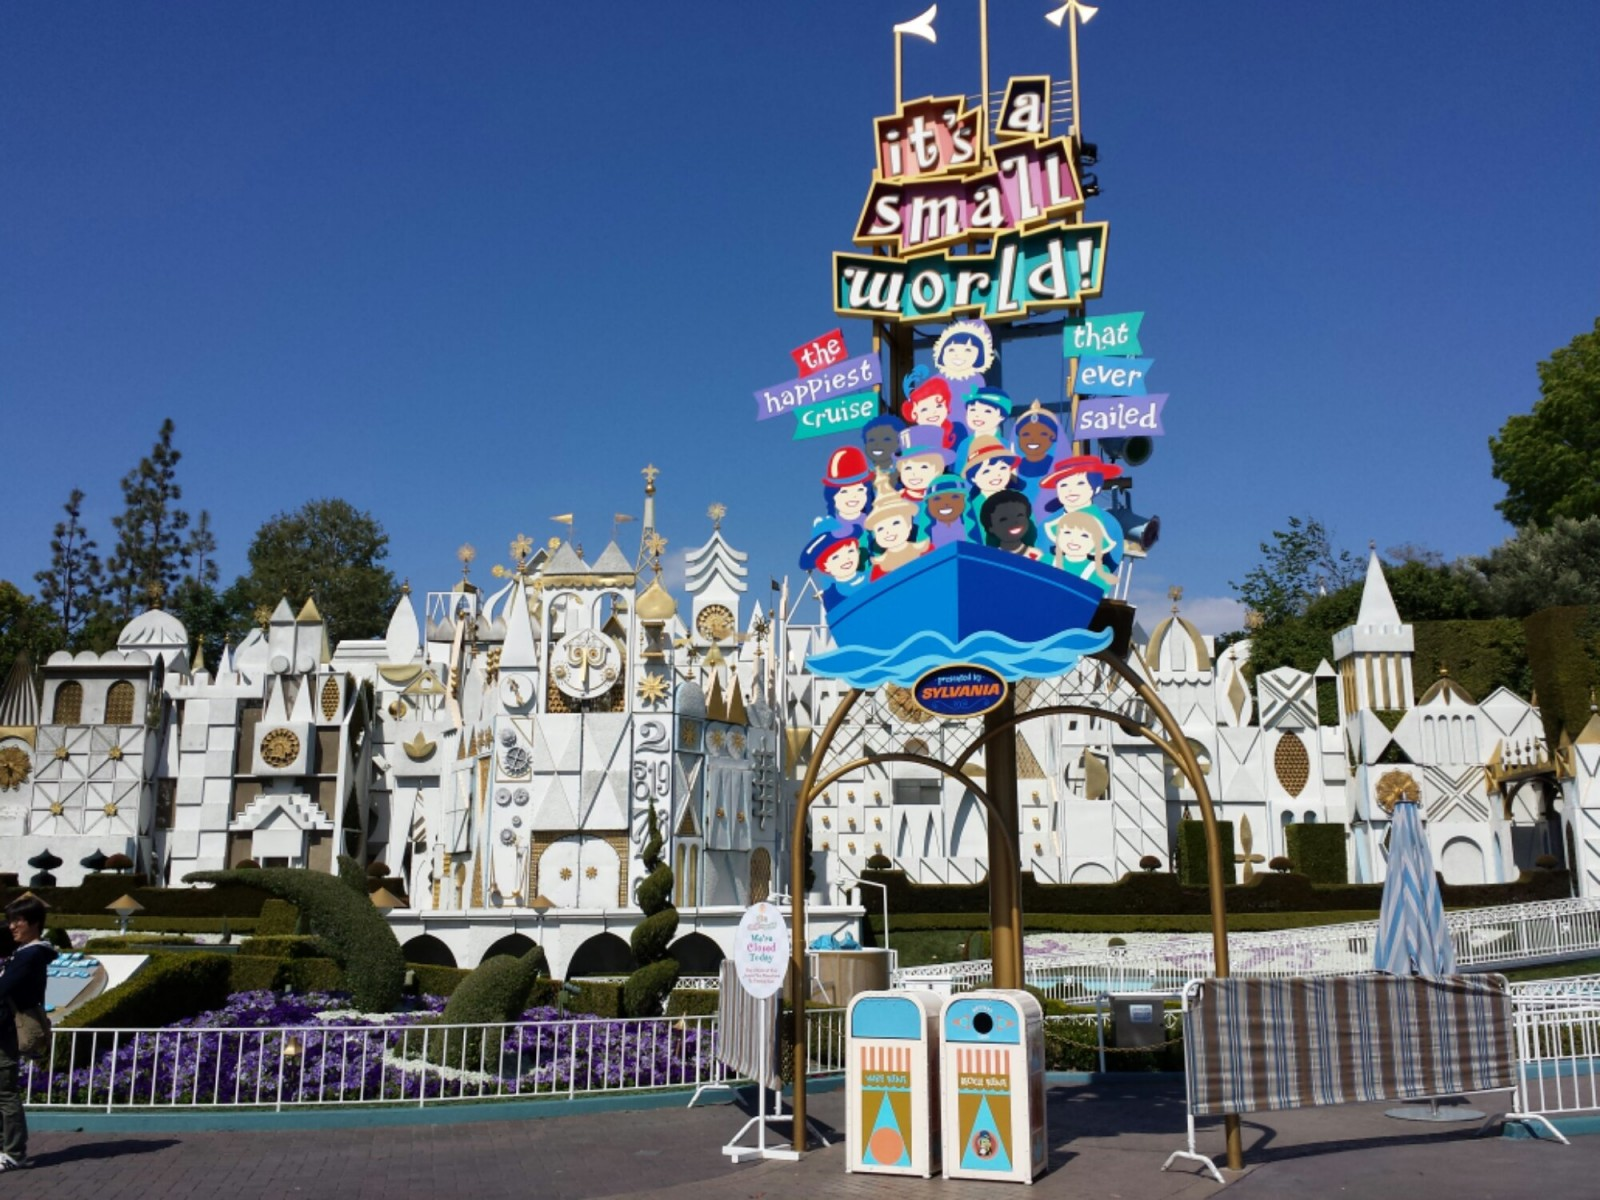 Its s Small World is also still closed